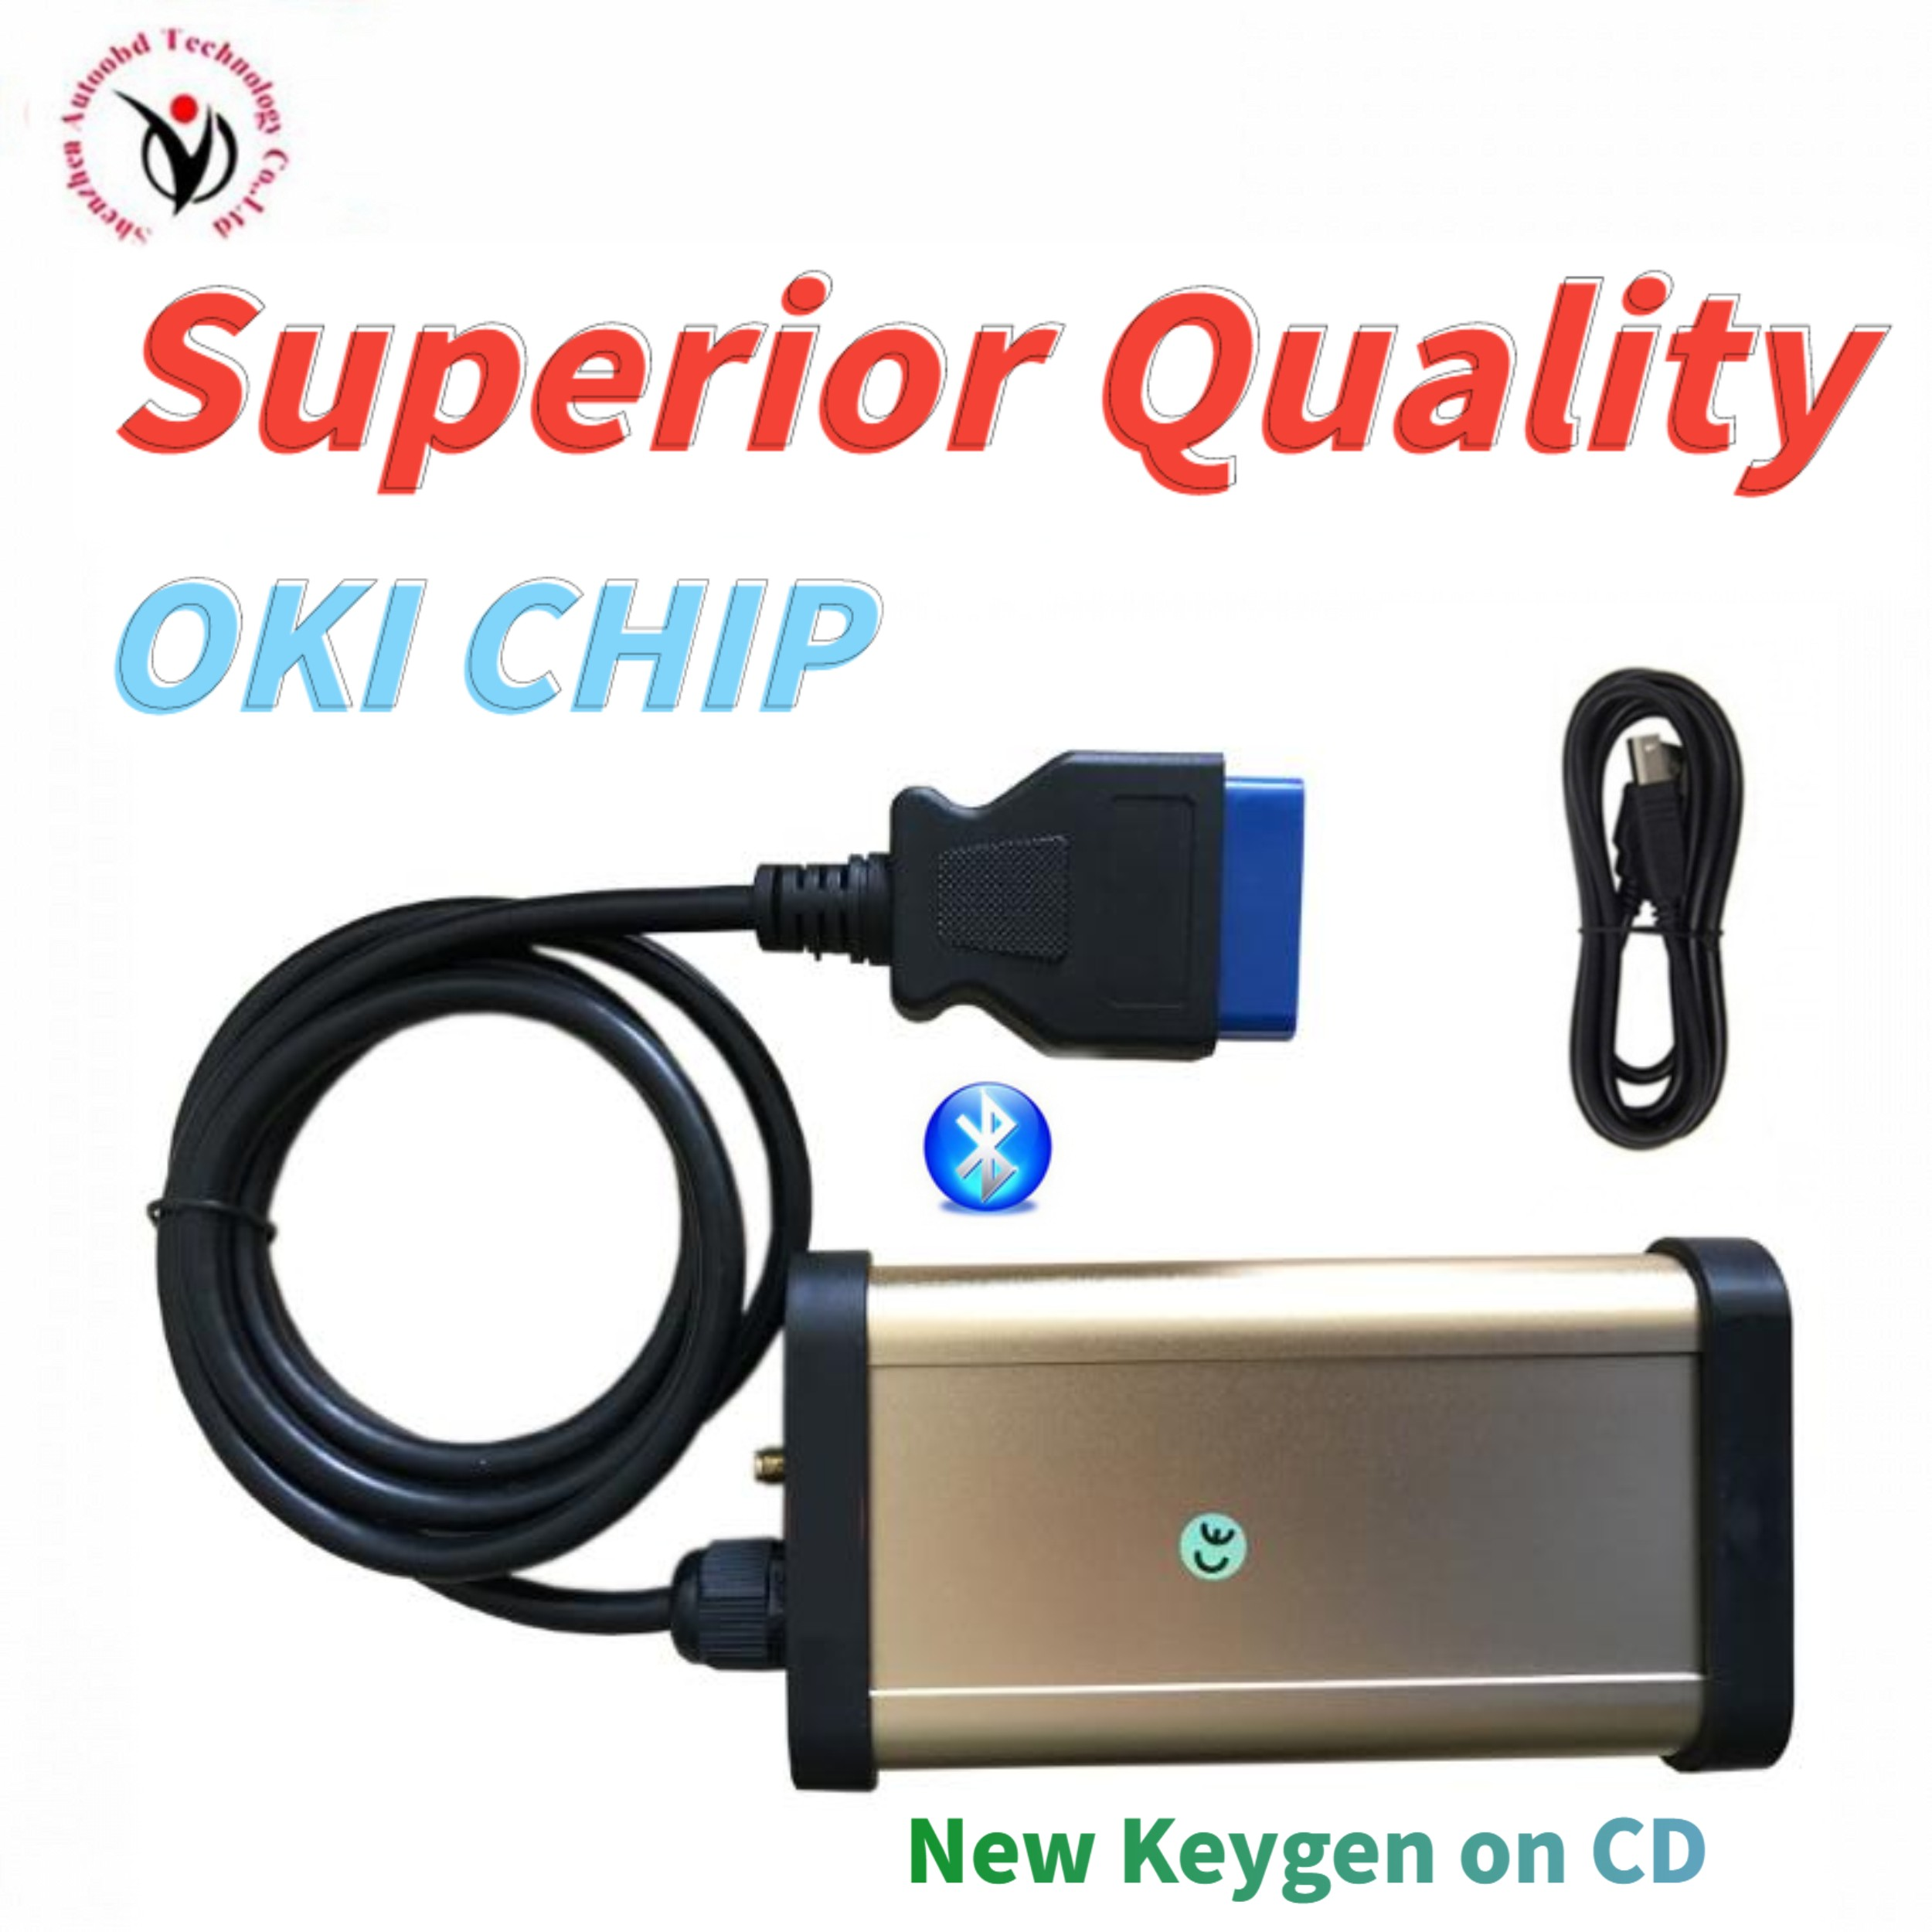 Best VD TCS CDP Plus Bluetooth Scanner Vd Ds150e Cdp With Oki Chip For Vdijk Autocoms Pro Car Truck Professional Diagnostic Tool